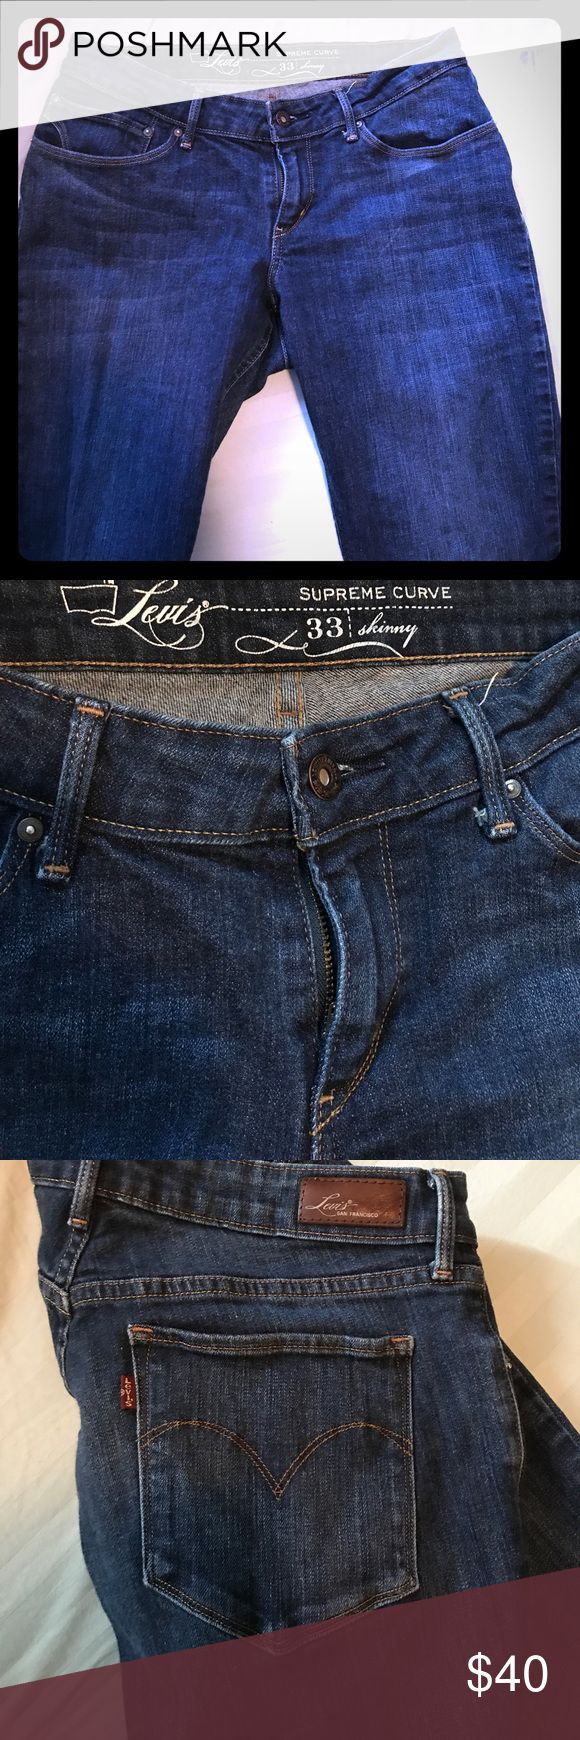 Levi's Supreme Curve Skinny Jeans Lots of life left in these, the fit is great for someone with a small waist and bigger but/hips. Someone that always has a waist gap, issues with underwear showing when they sit down. So shimmy in and let those curves work! Levi's Jeans Skinny